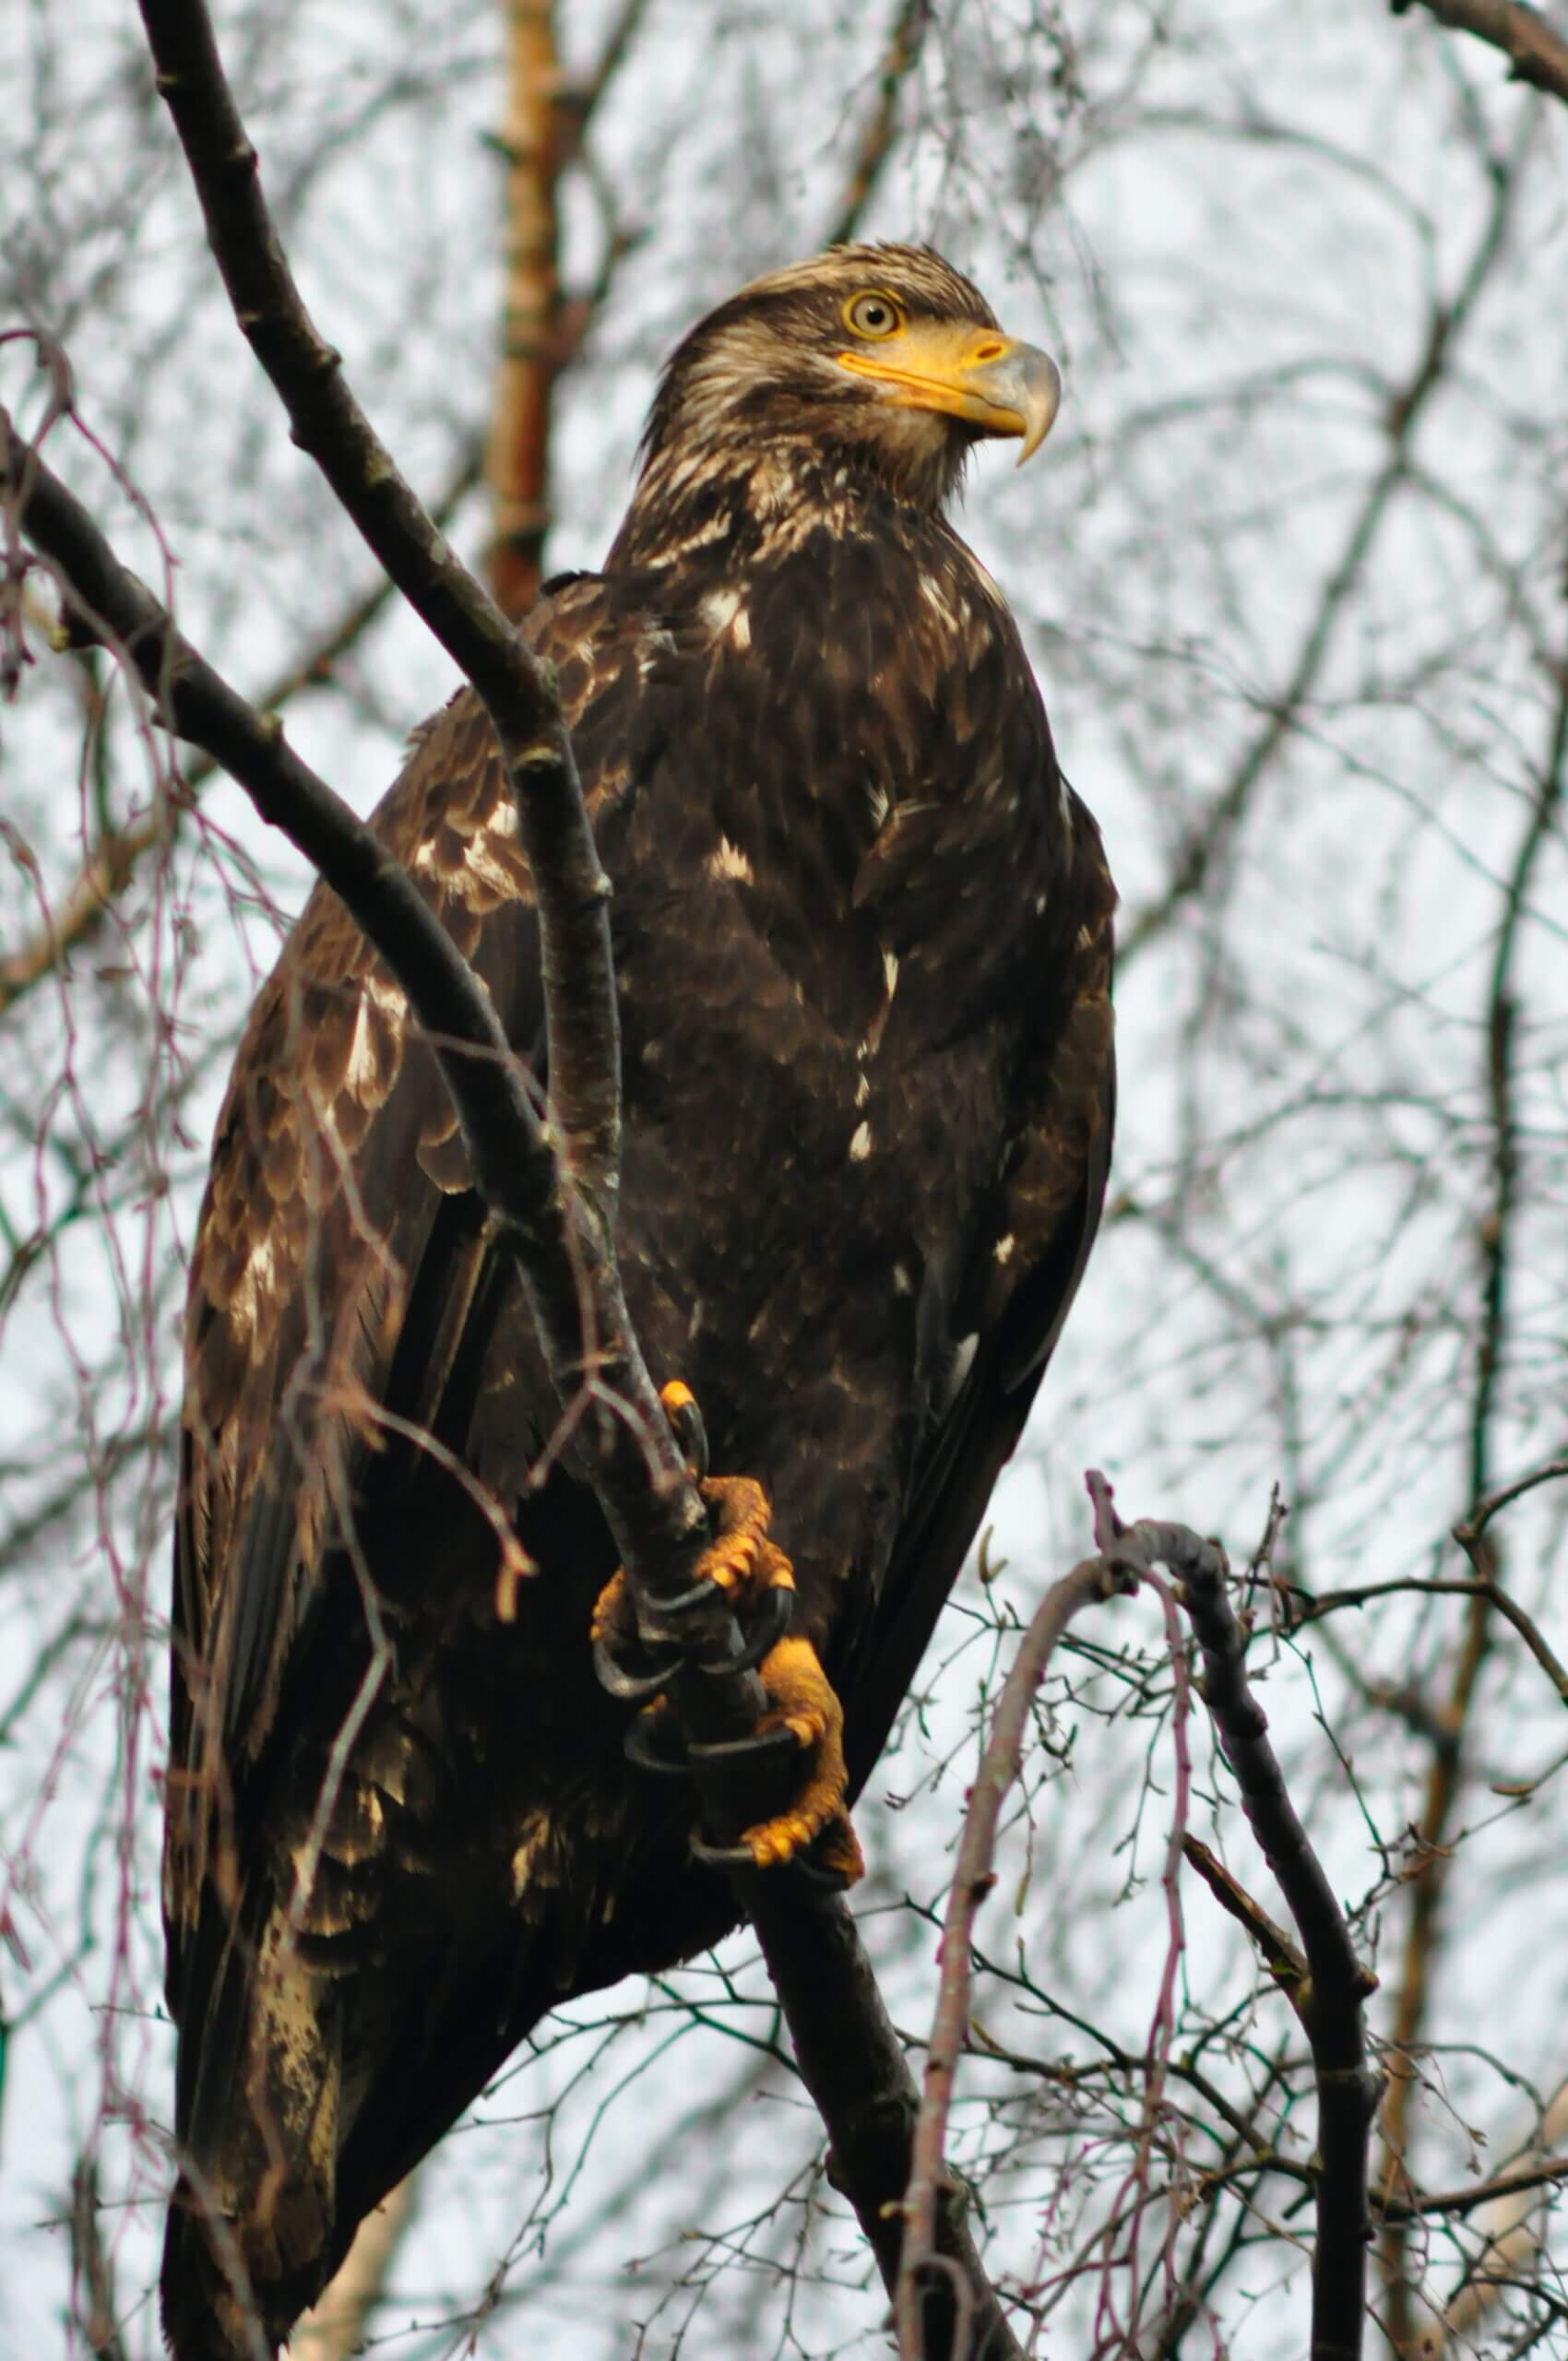 A Golden eagle in a tree.